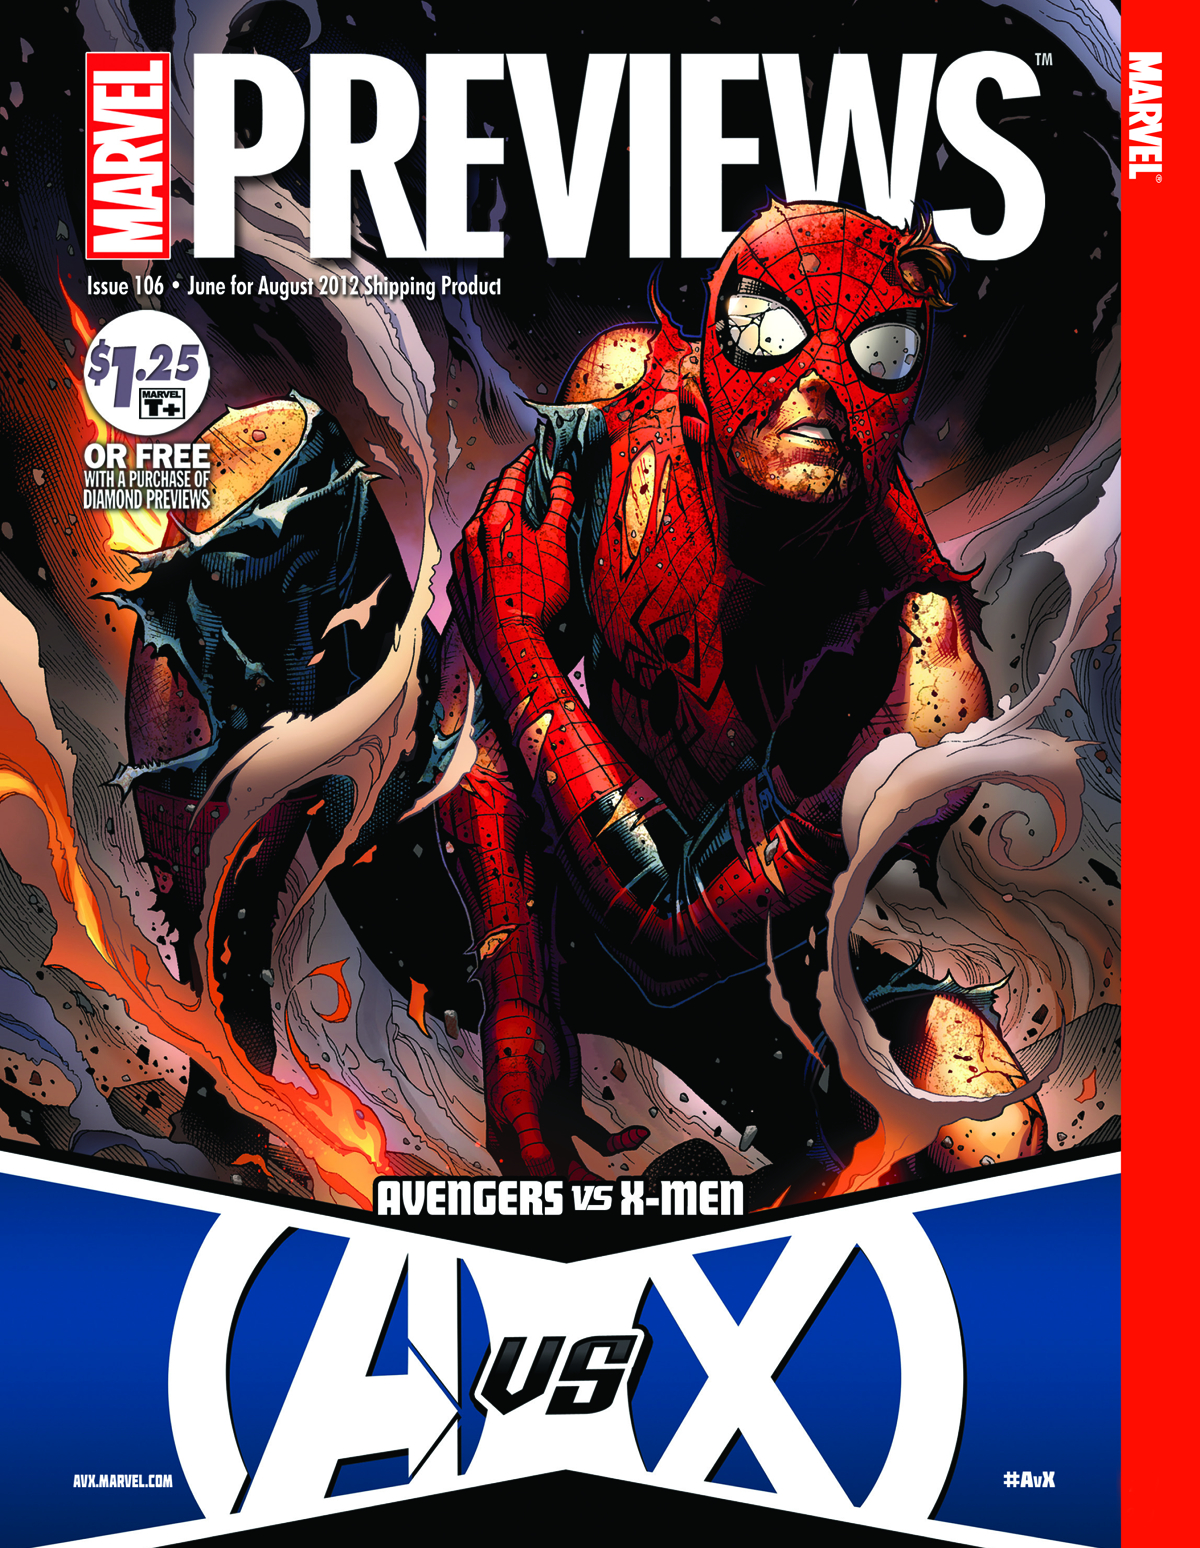 MARVEL PREVIEWS AUGUST 2012 EXTRAS